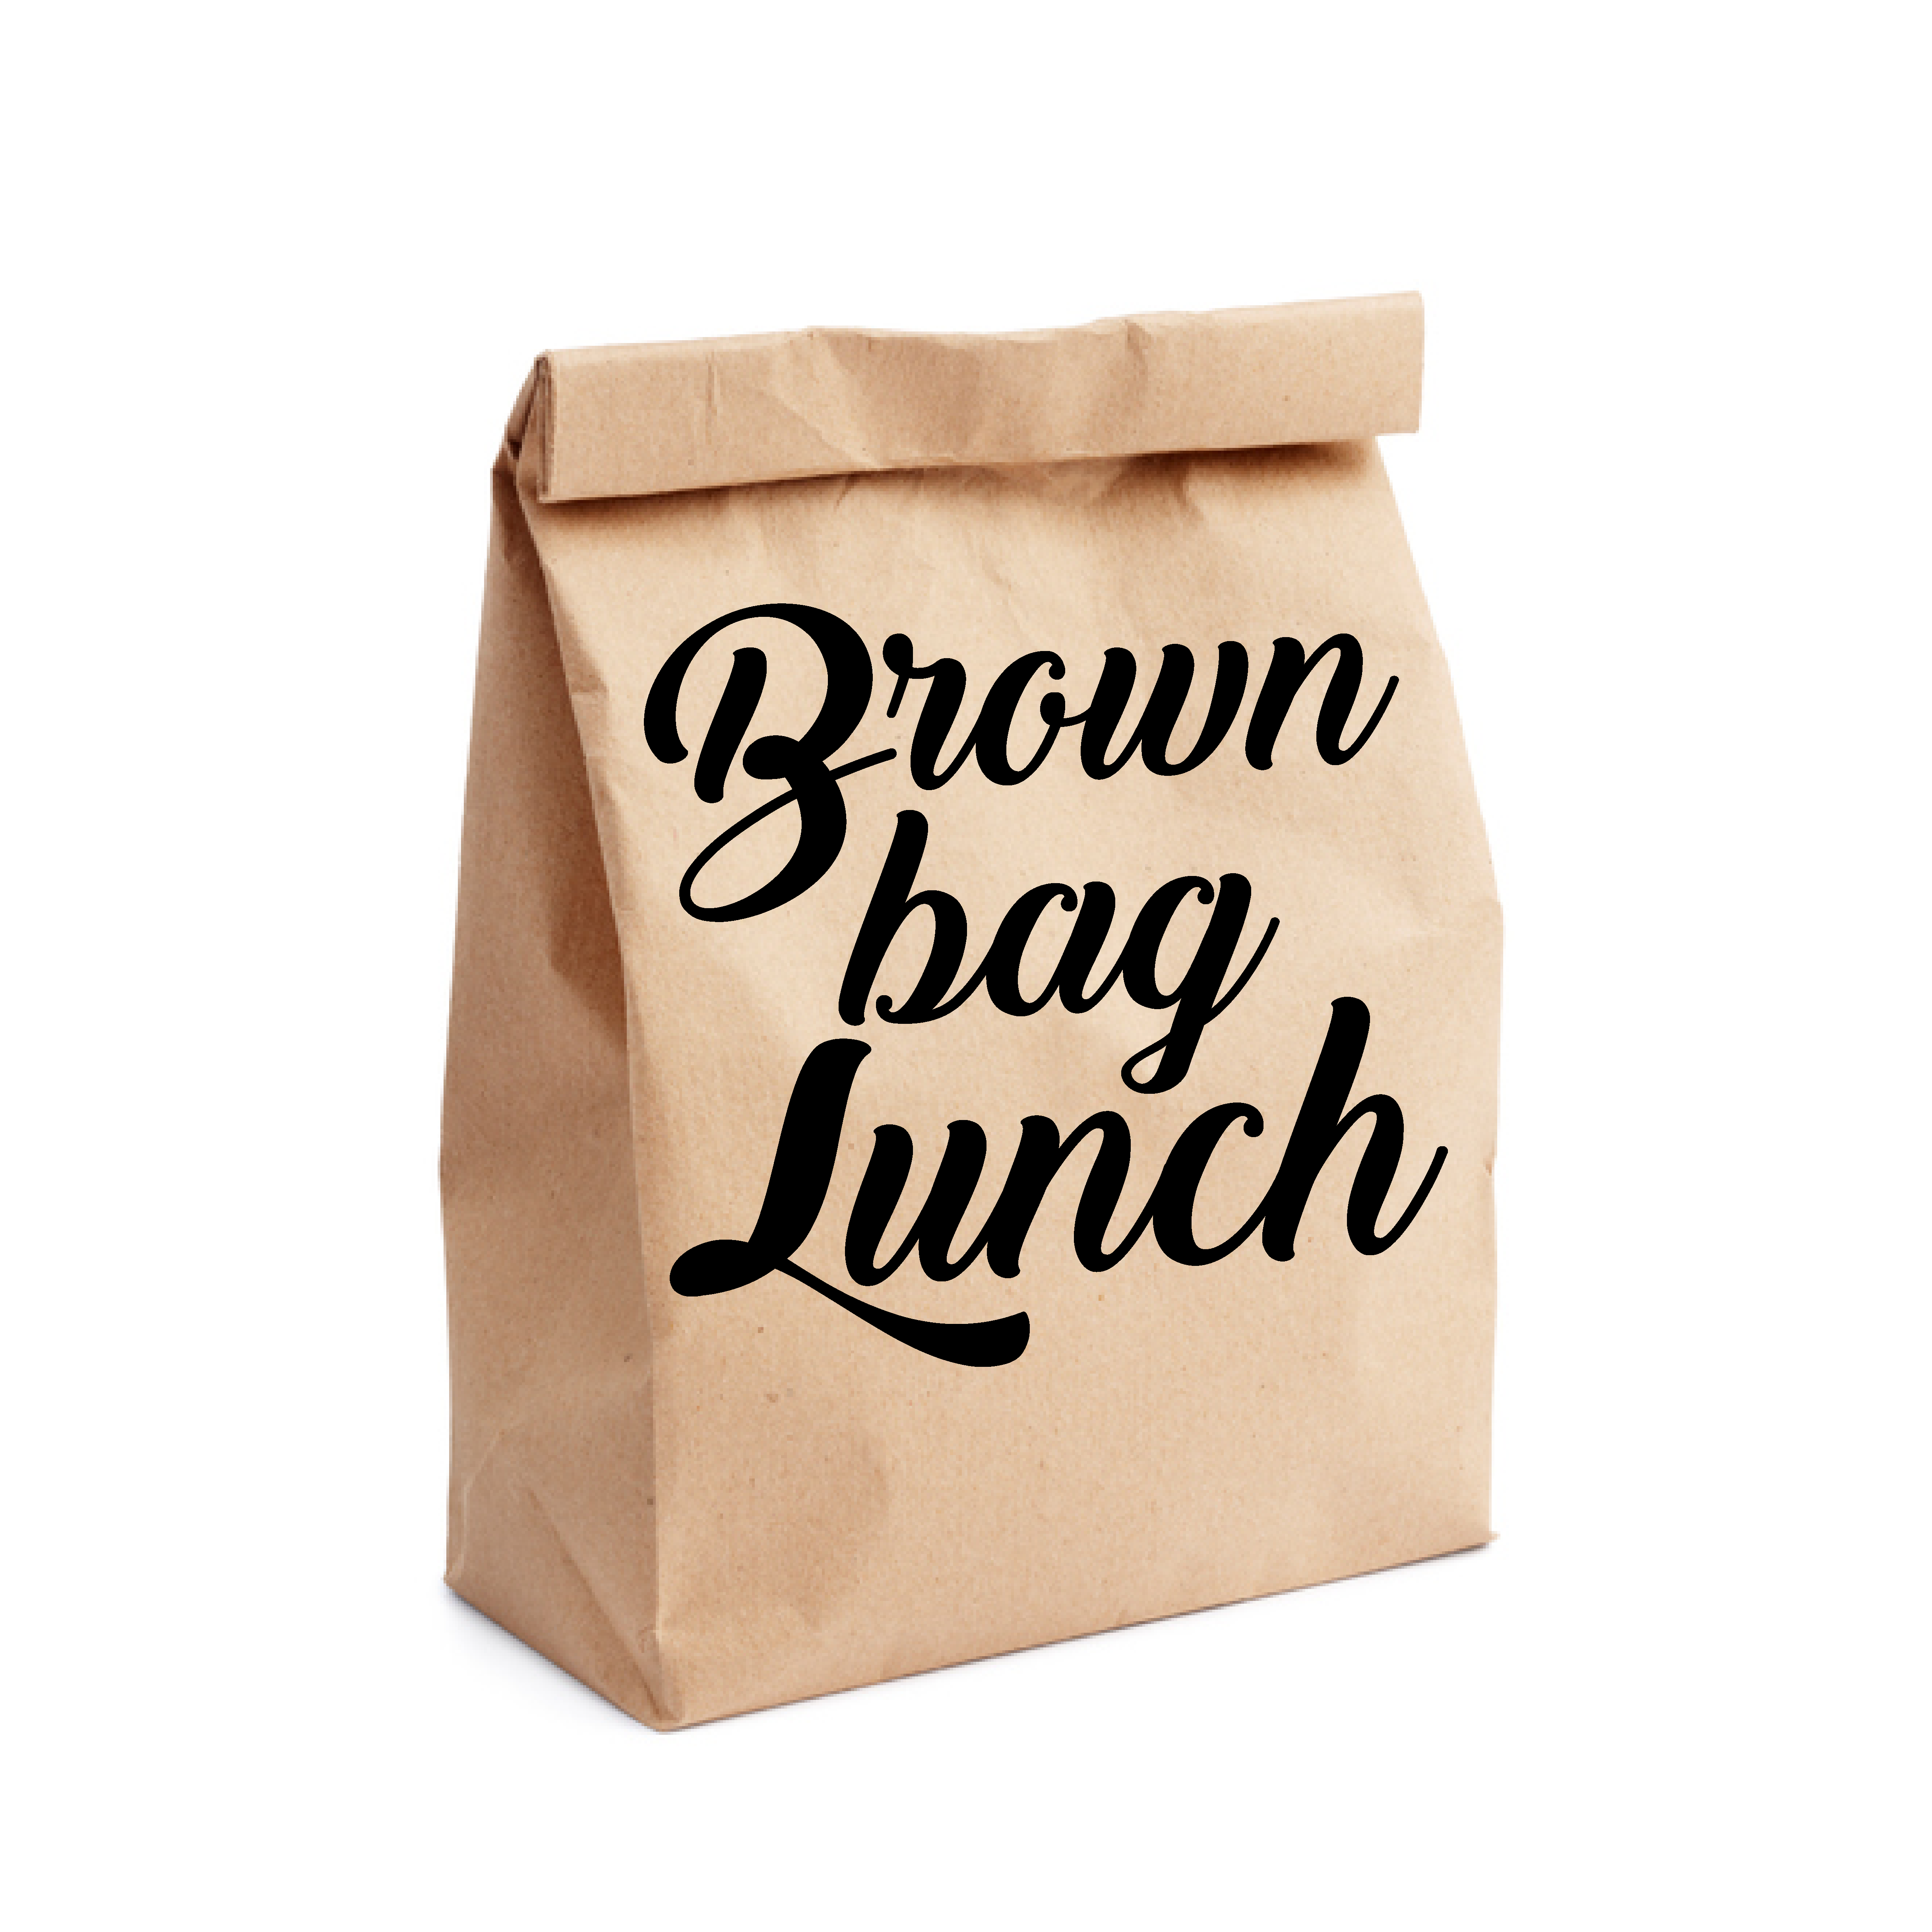 Brown Bag Lunch The Relationship With Supervisors